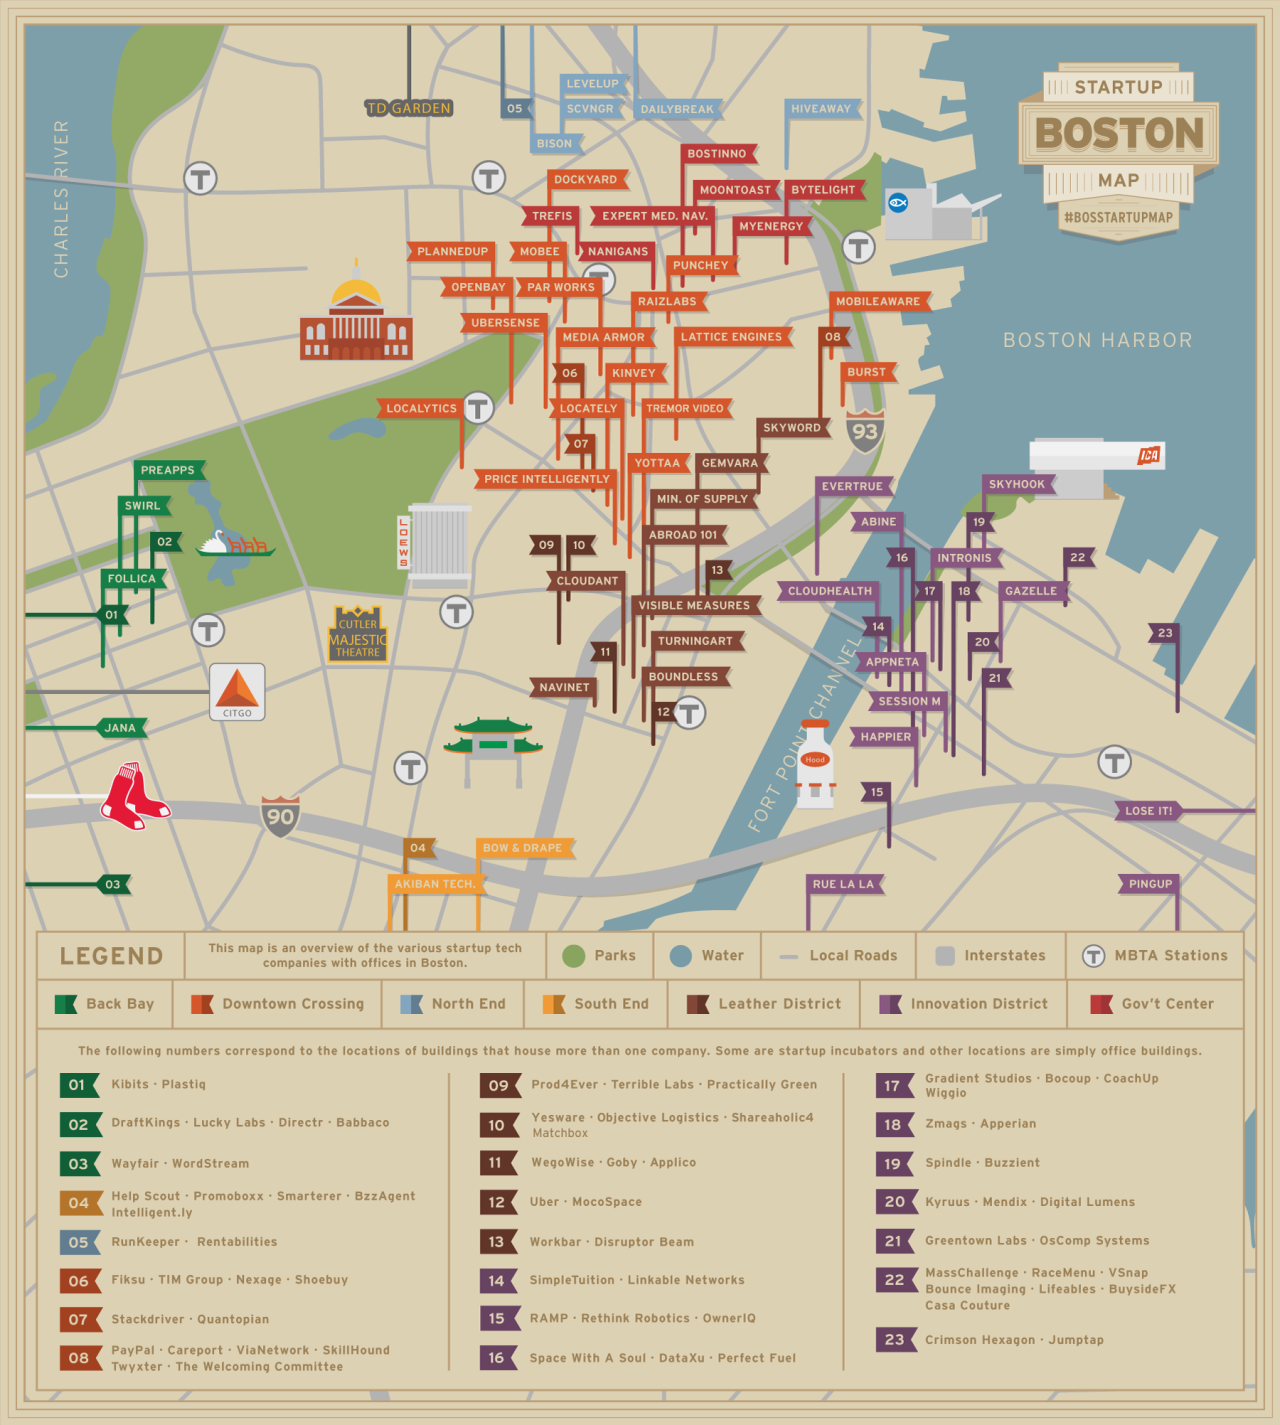 The Boston Startup Map, according to Kinvey